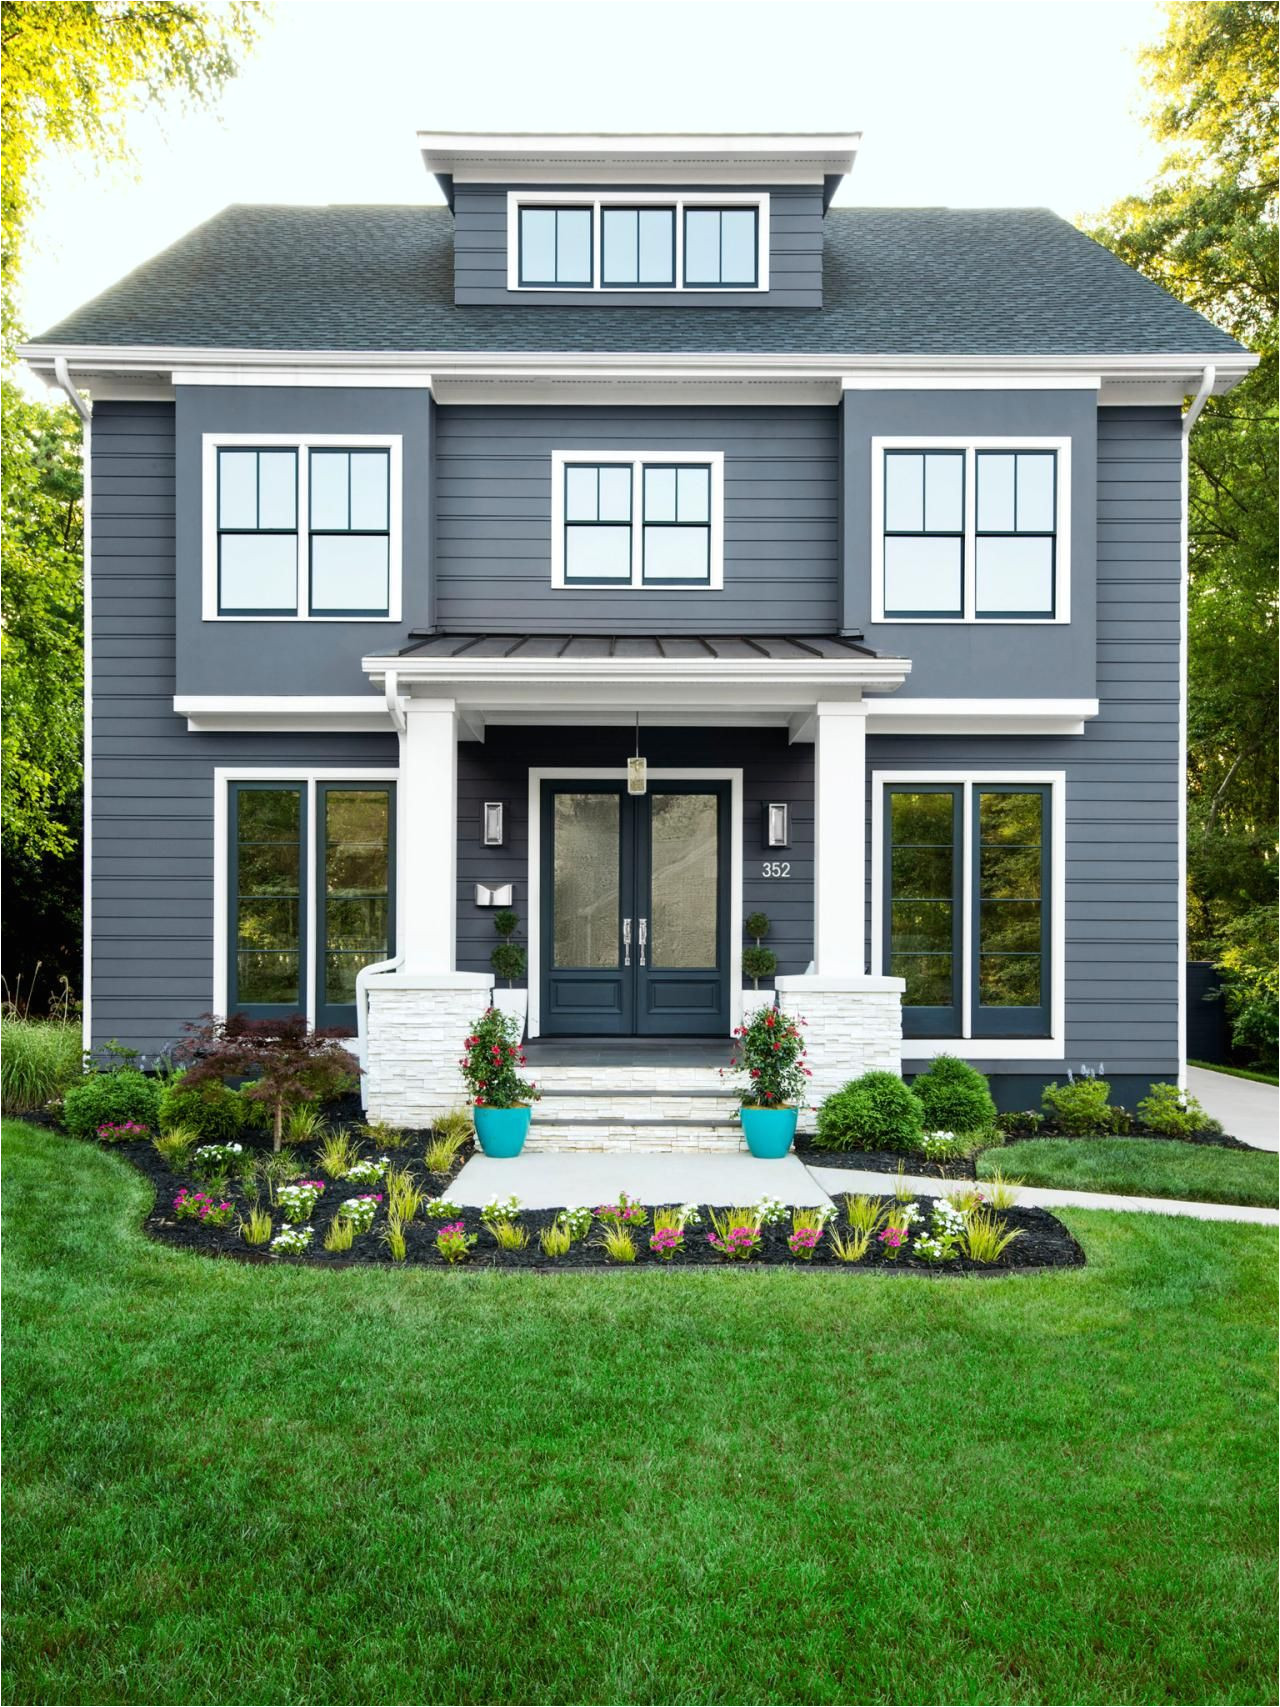 house is foggy day by sherwin williams doors and trim are knight sarmor by ppg the voice of color and trim is snowbound by sherwin williams